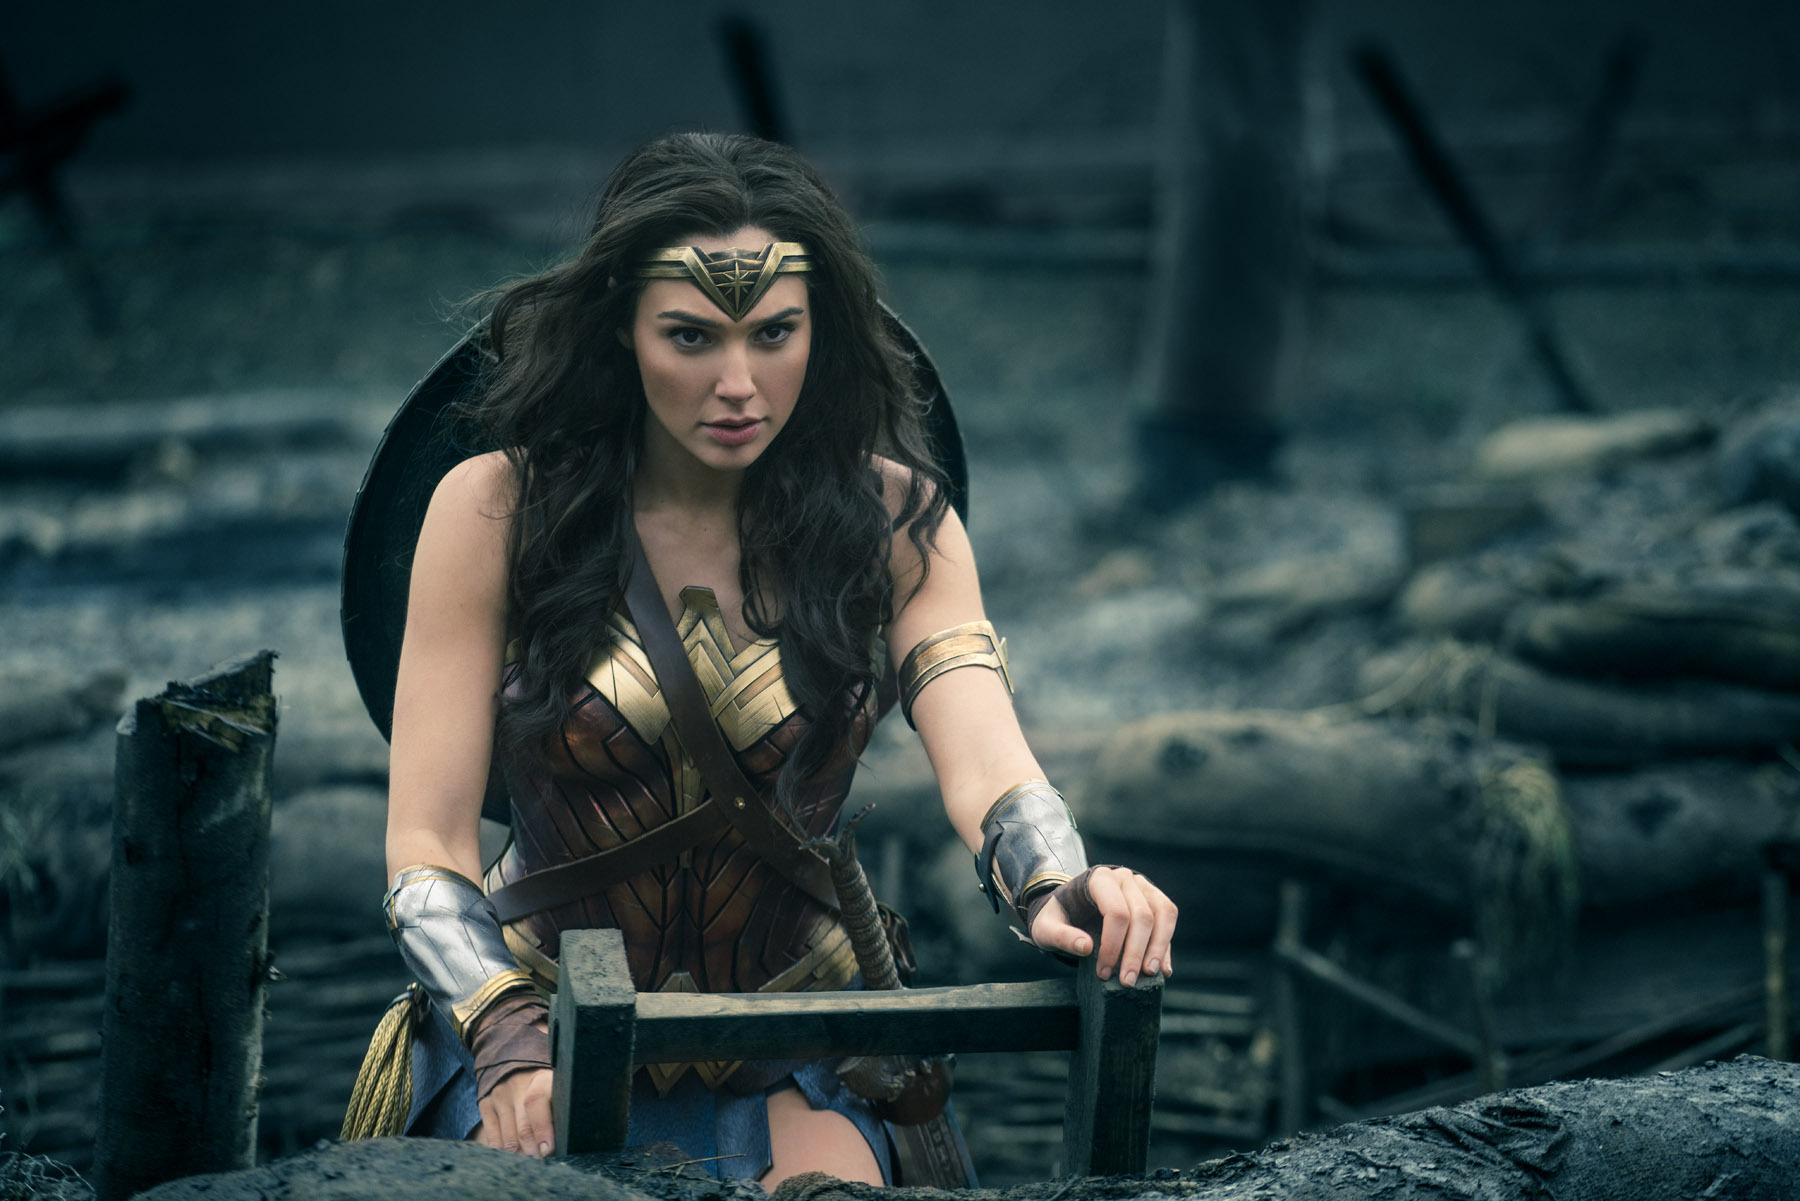 Also, this is NOT a review. If you'd like to read our spoiler-free review  of Wonder Woman, you can click right here.